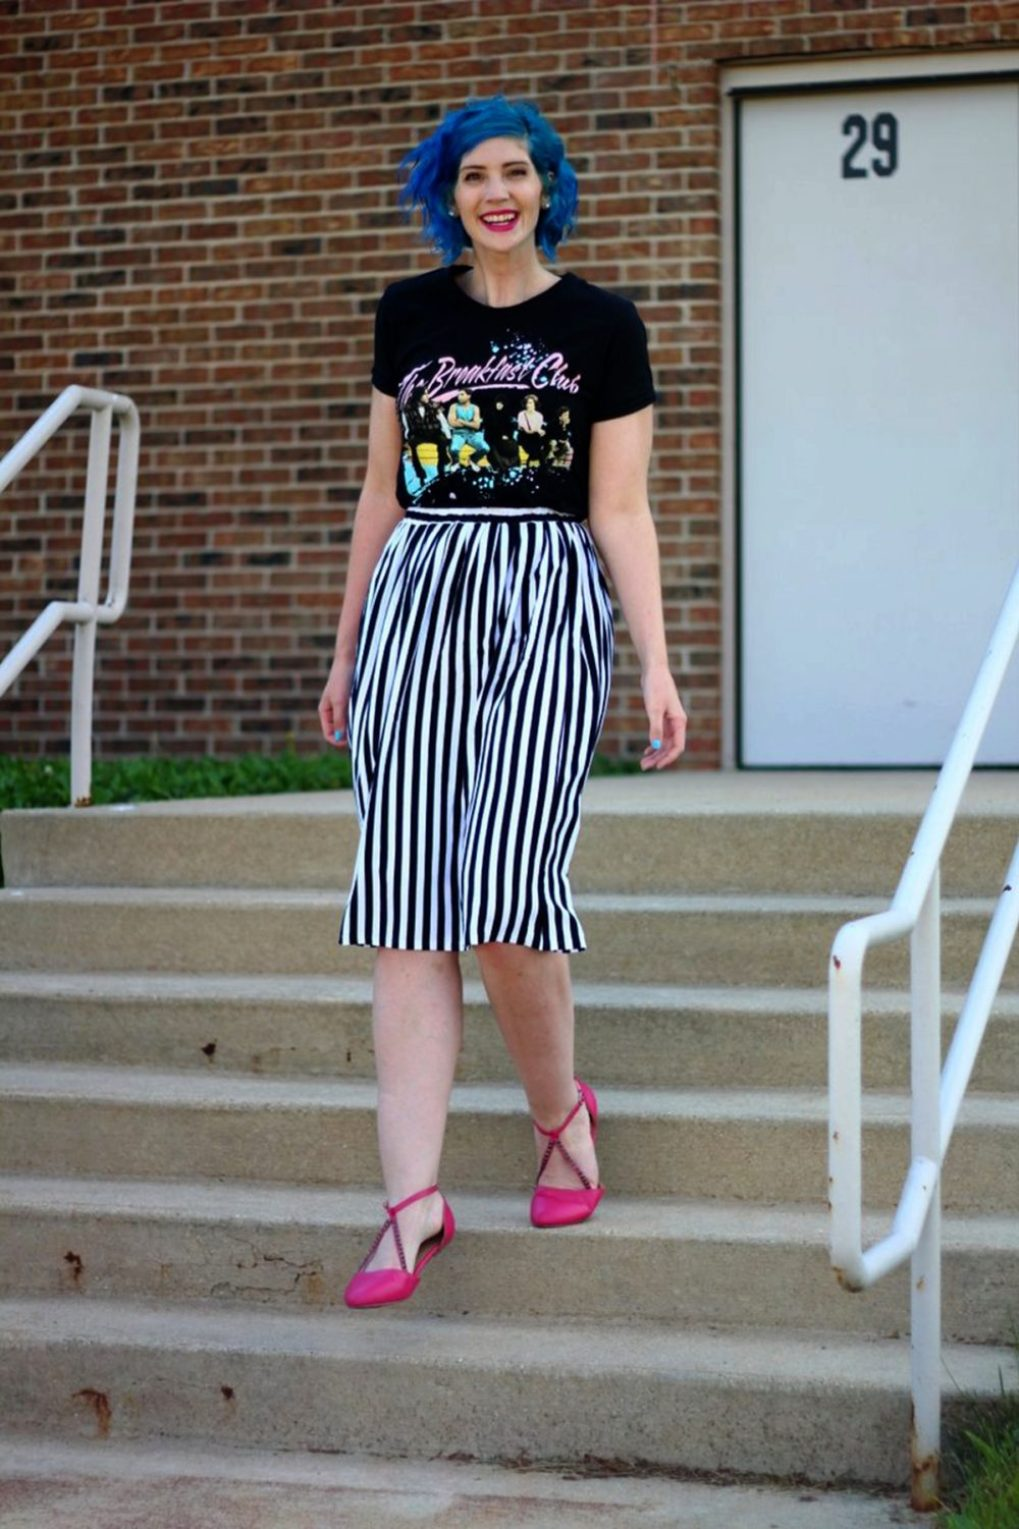 Outfit: Breakfast club graphic tee, black and white striped skirt, blue hair, pink lipstick, pink flats.